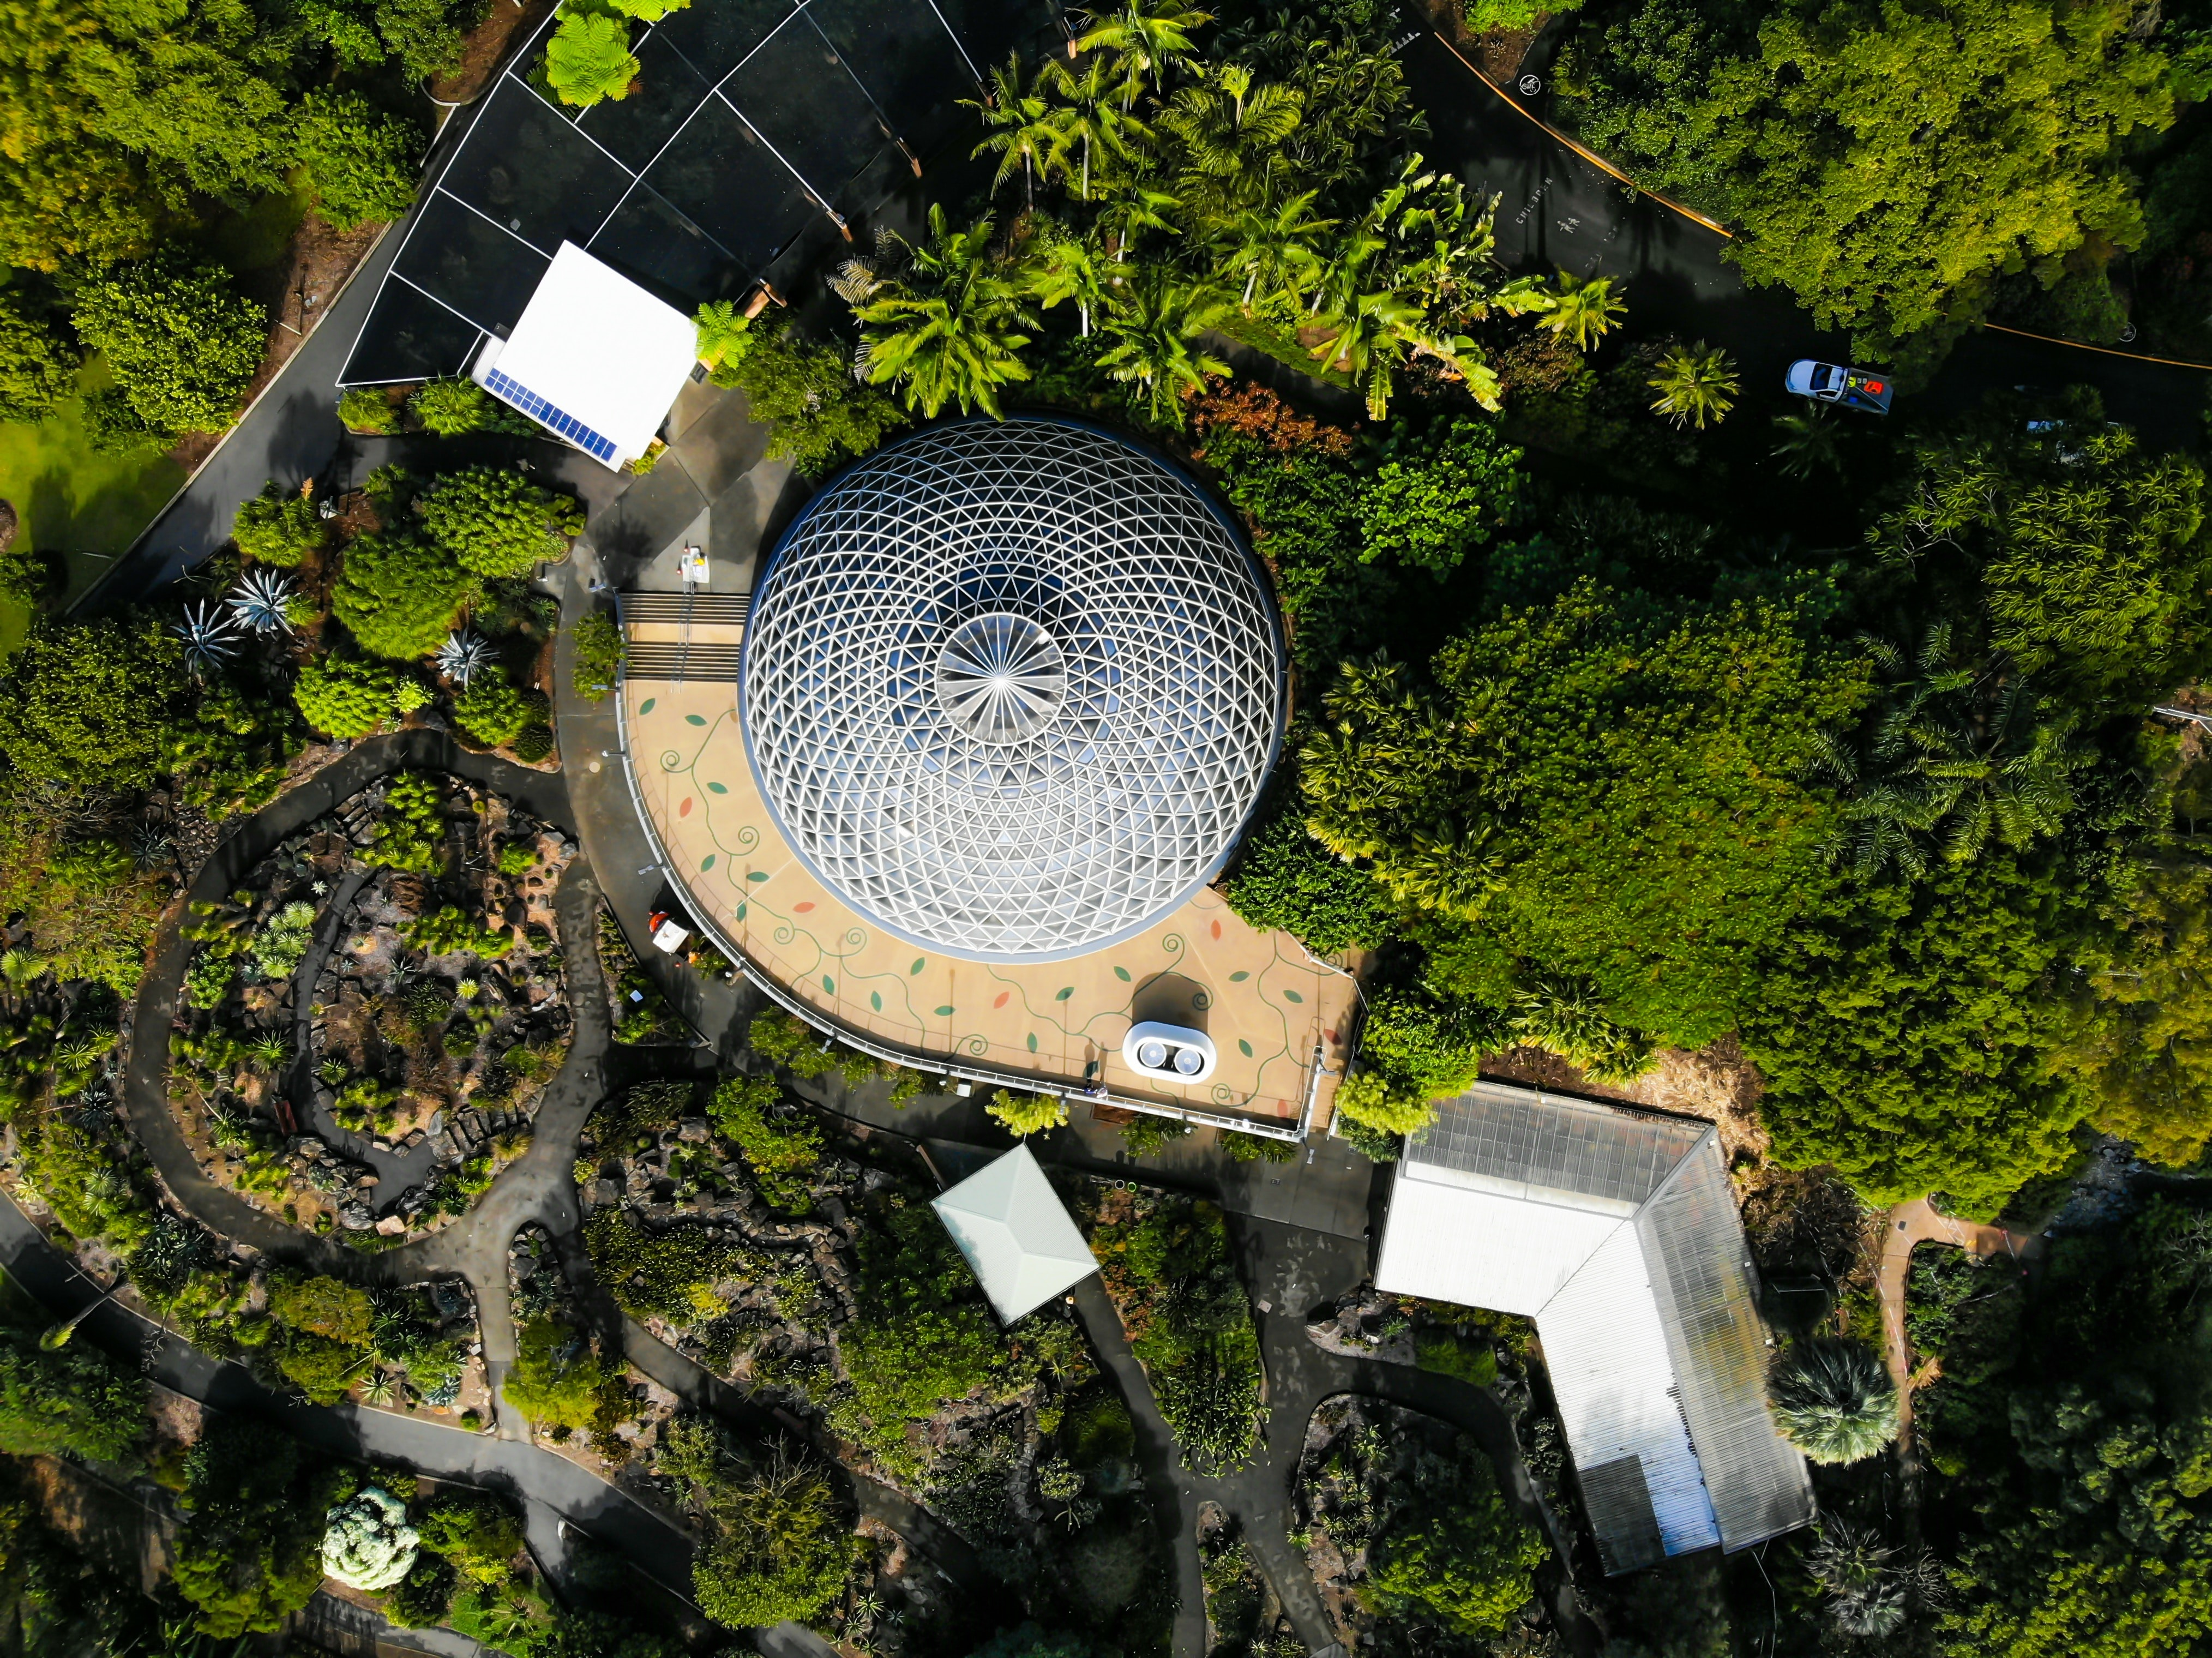 areal photography of round gray building surrounded by trees